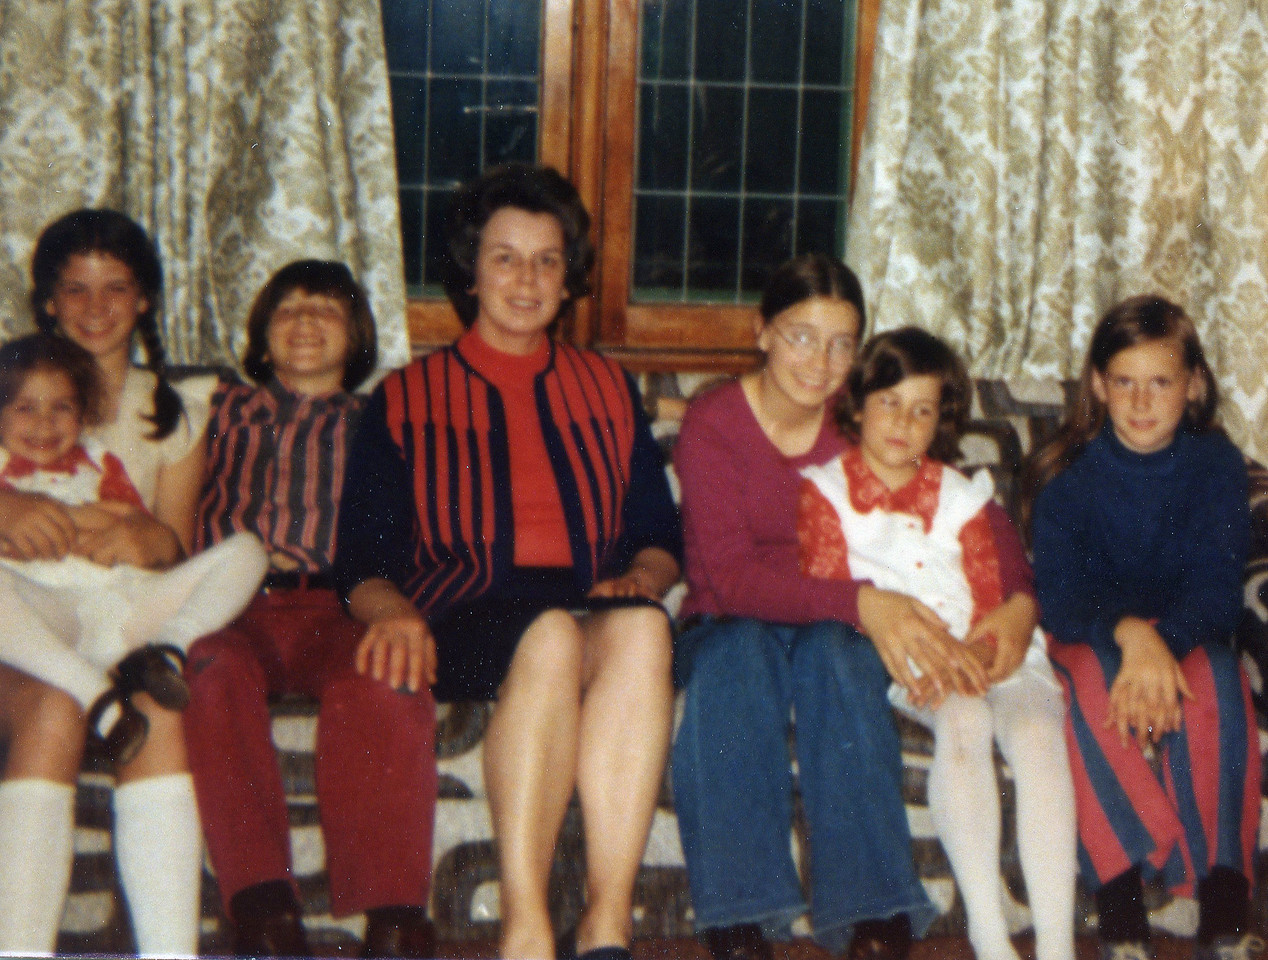 Left to Right: Kathleen & Maureen, Bernie, (Mom) Therese, Josie & Maureen and Eileen